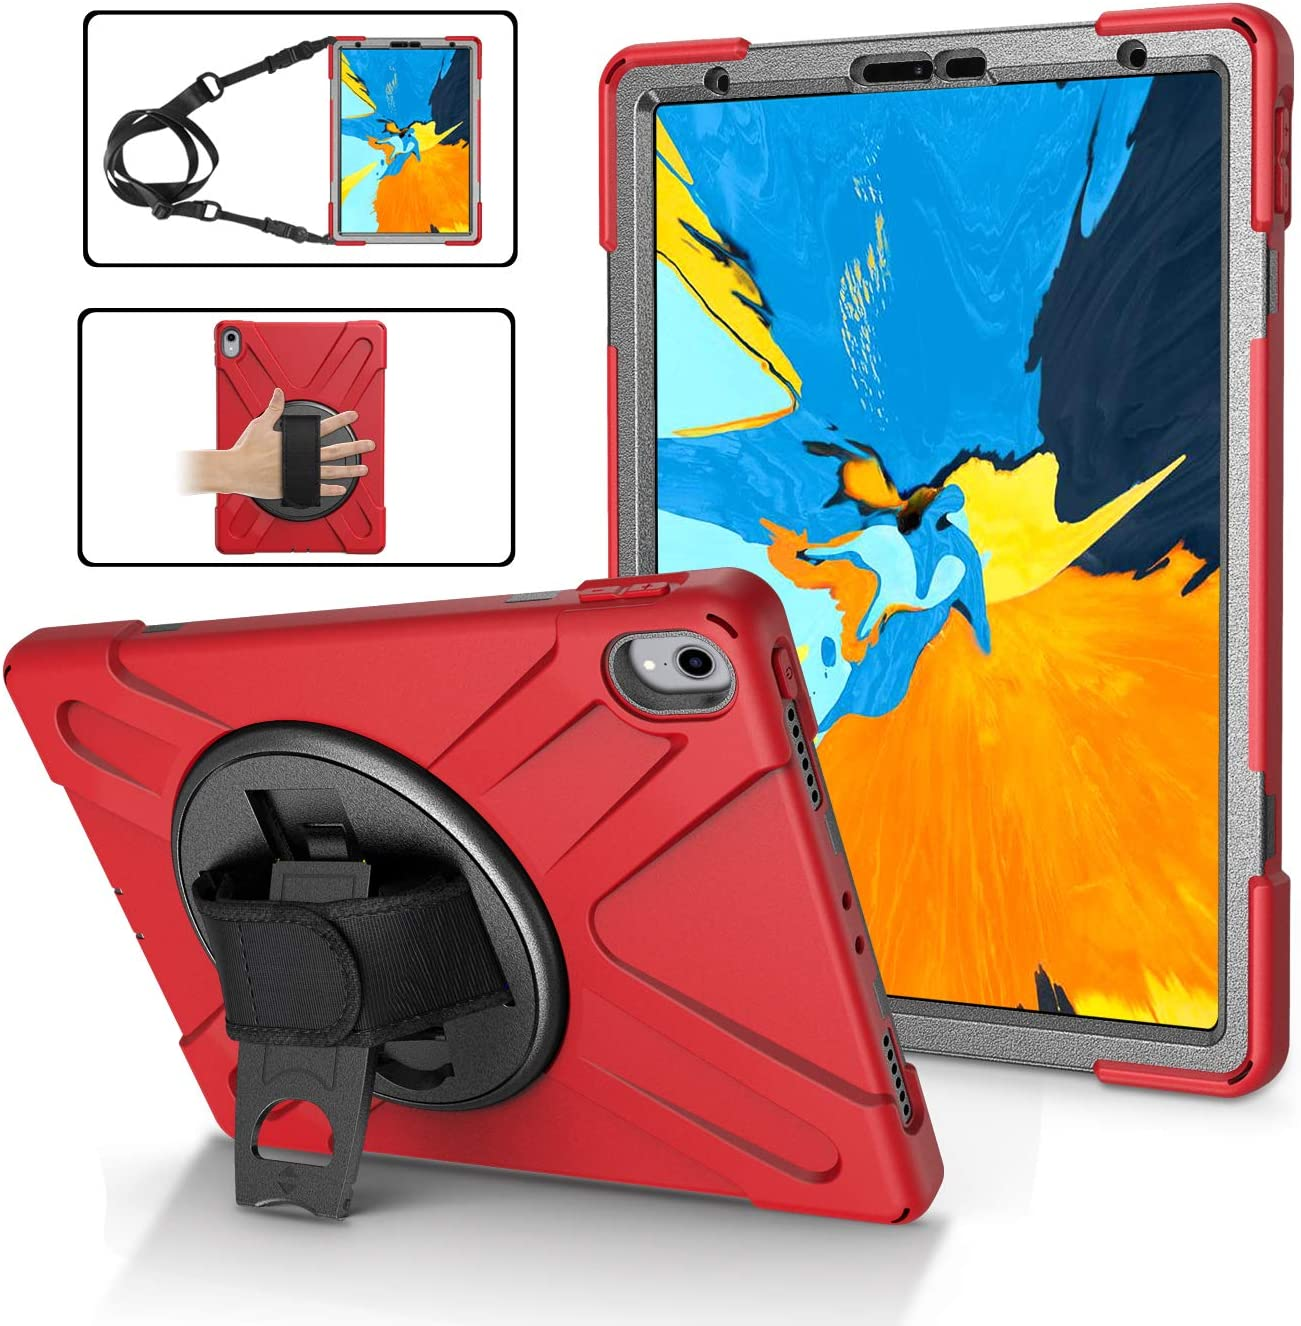 Case for iPad Pro 11 Inch 2018 | TSQ iPad Pro 11 2018 Case Rugged Corner Protection | Full-Body Protective Hybrid Cover with 360 Degree Swivel Kickstand, Shoulder Strap, Hand Strap for Kids | Red